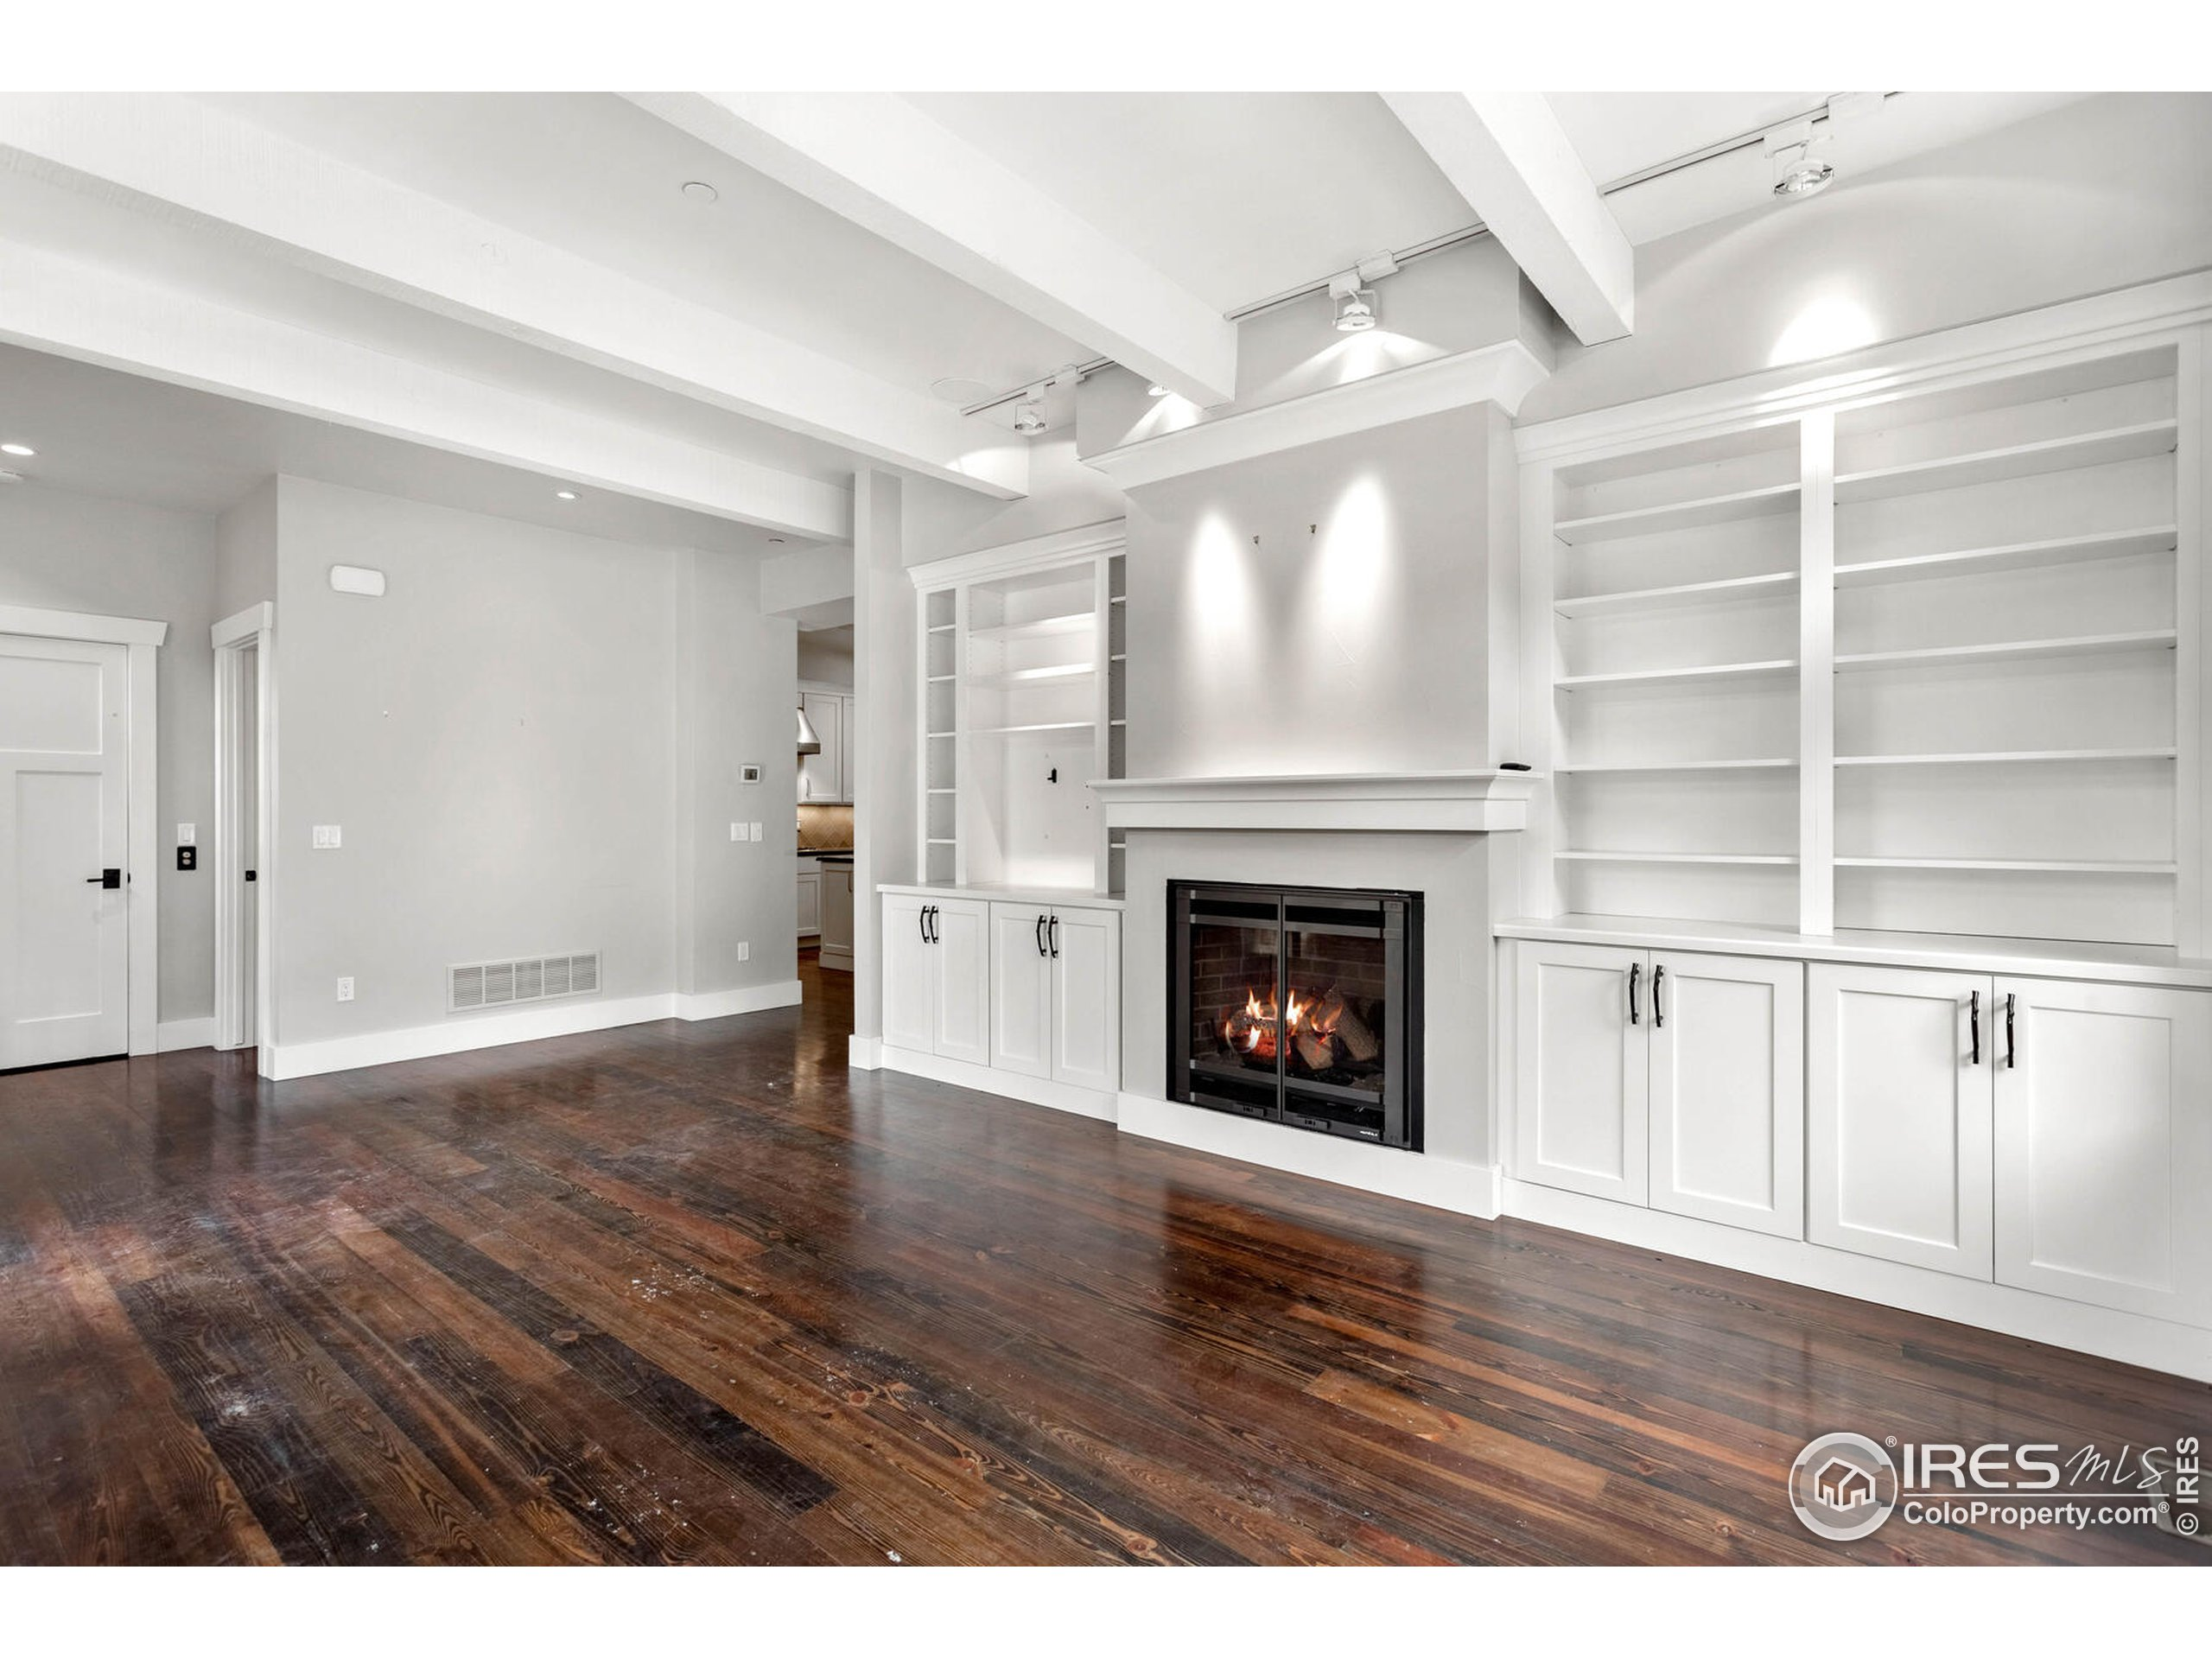 Incredible Design Features; Beamed Ceilings, Fireplace, Wood Trim, and More!